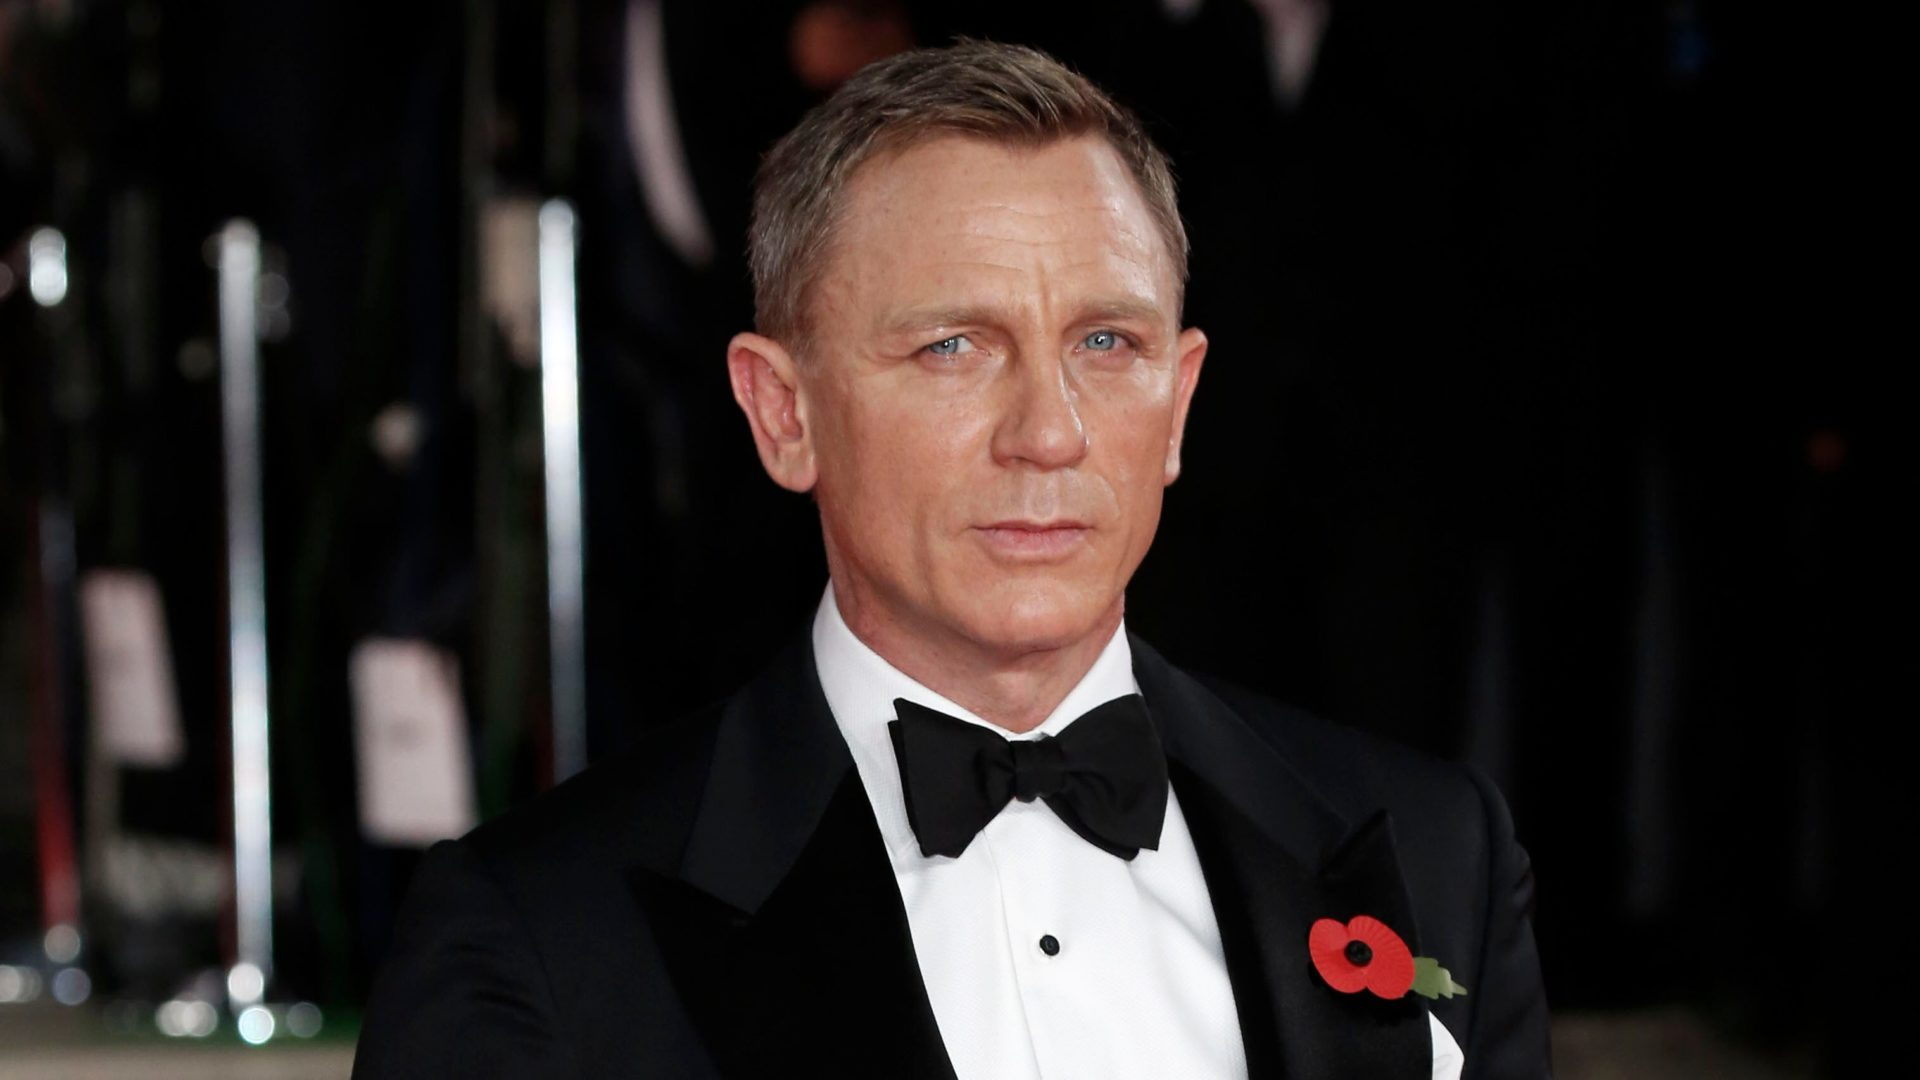 Daniel Craig - Photo courtesy of Getty Images